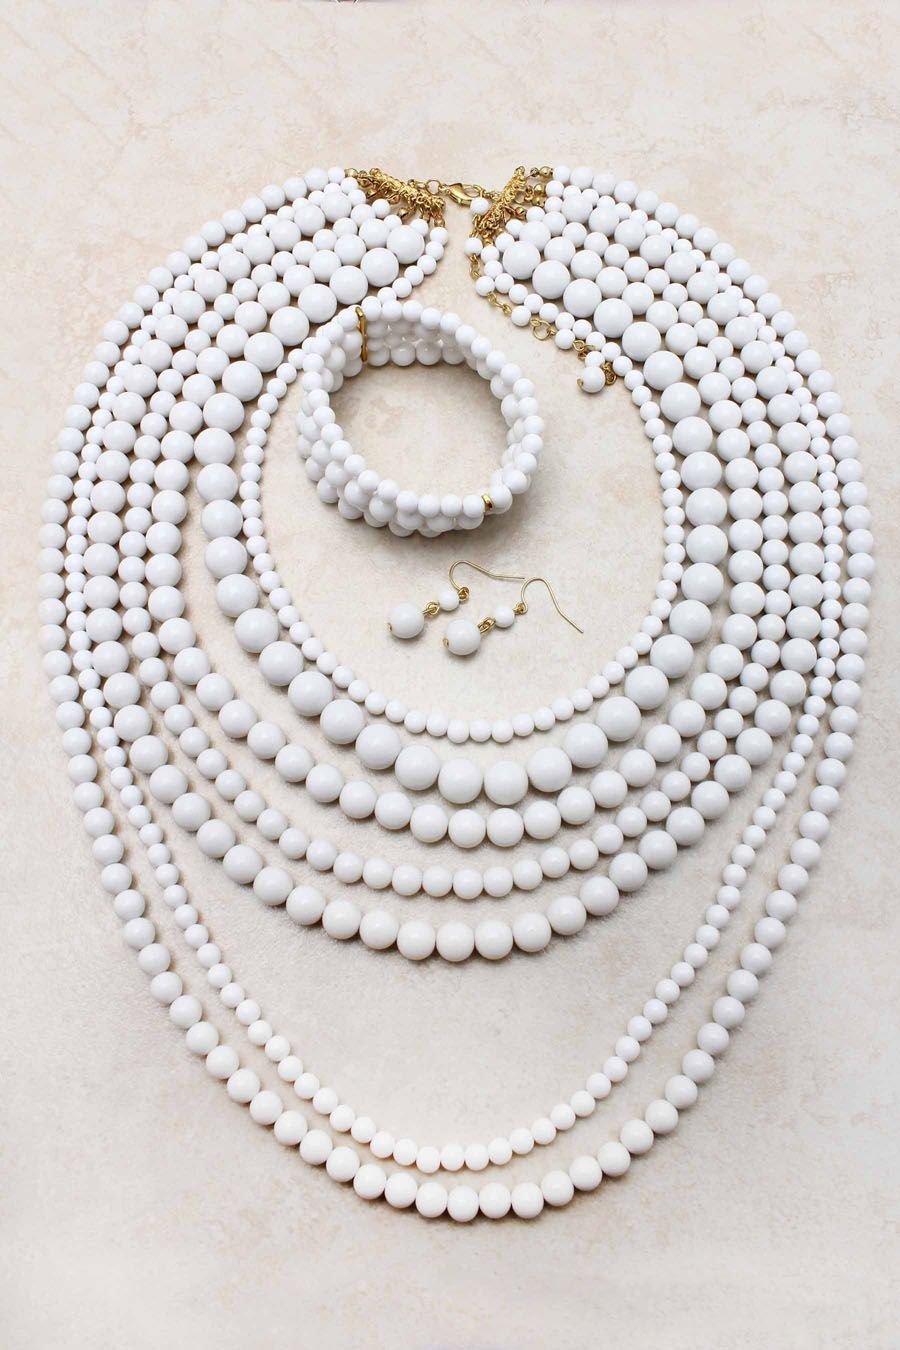 Fashion Jewelry Necklaces Online | Buy Fashion Necklaces Online | Emma Stine